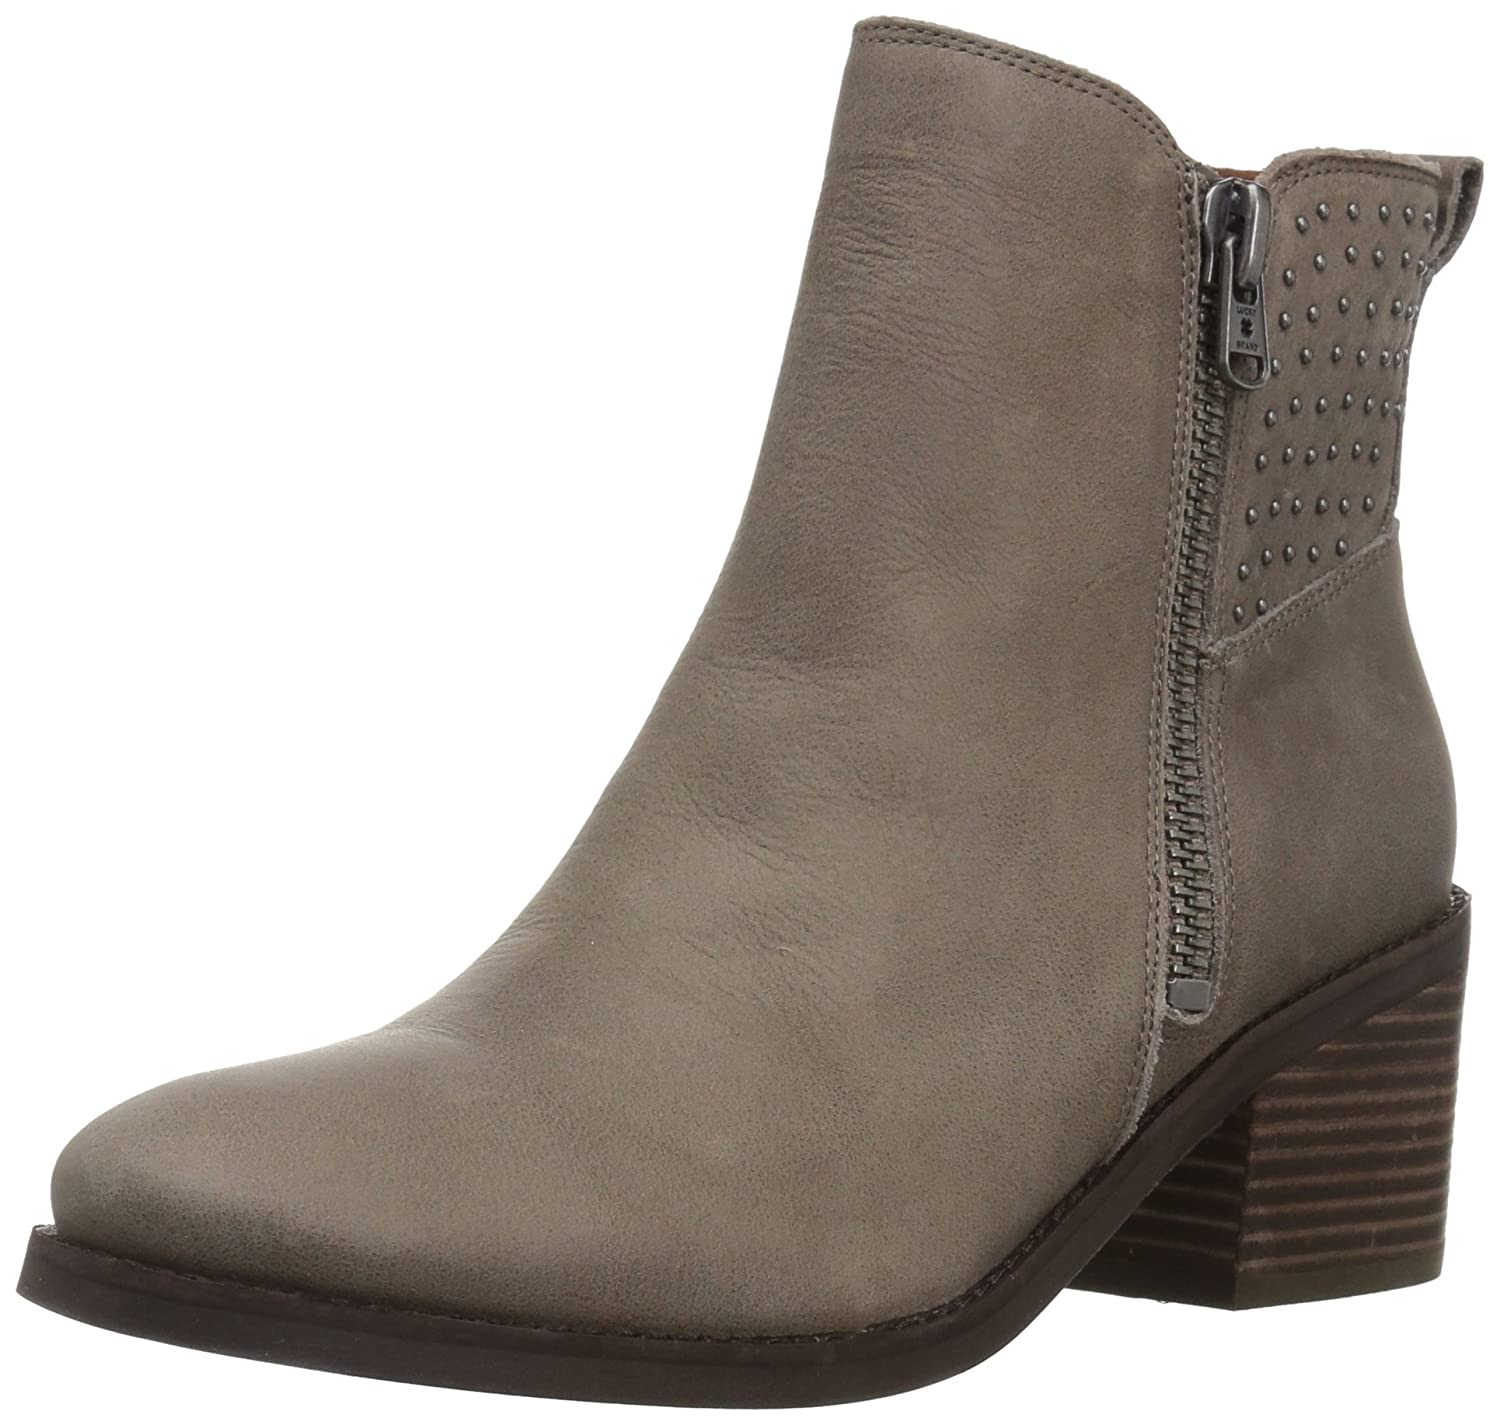 Lucky Brand Women's Kalie Fashion Boot B06XD2N5PD 5.5 M US|Brindle